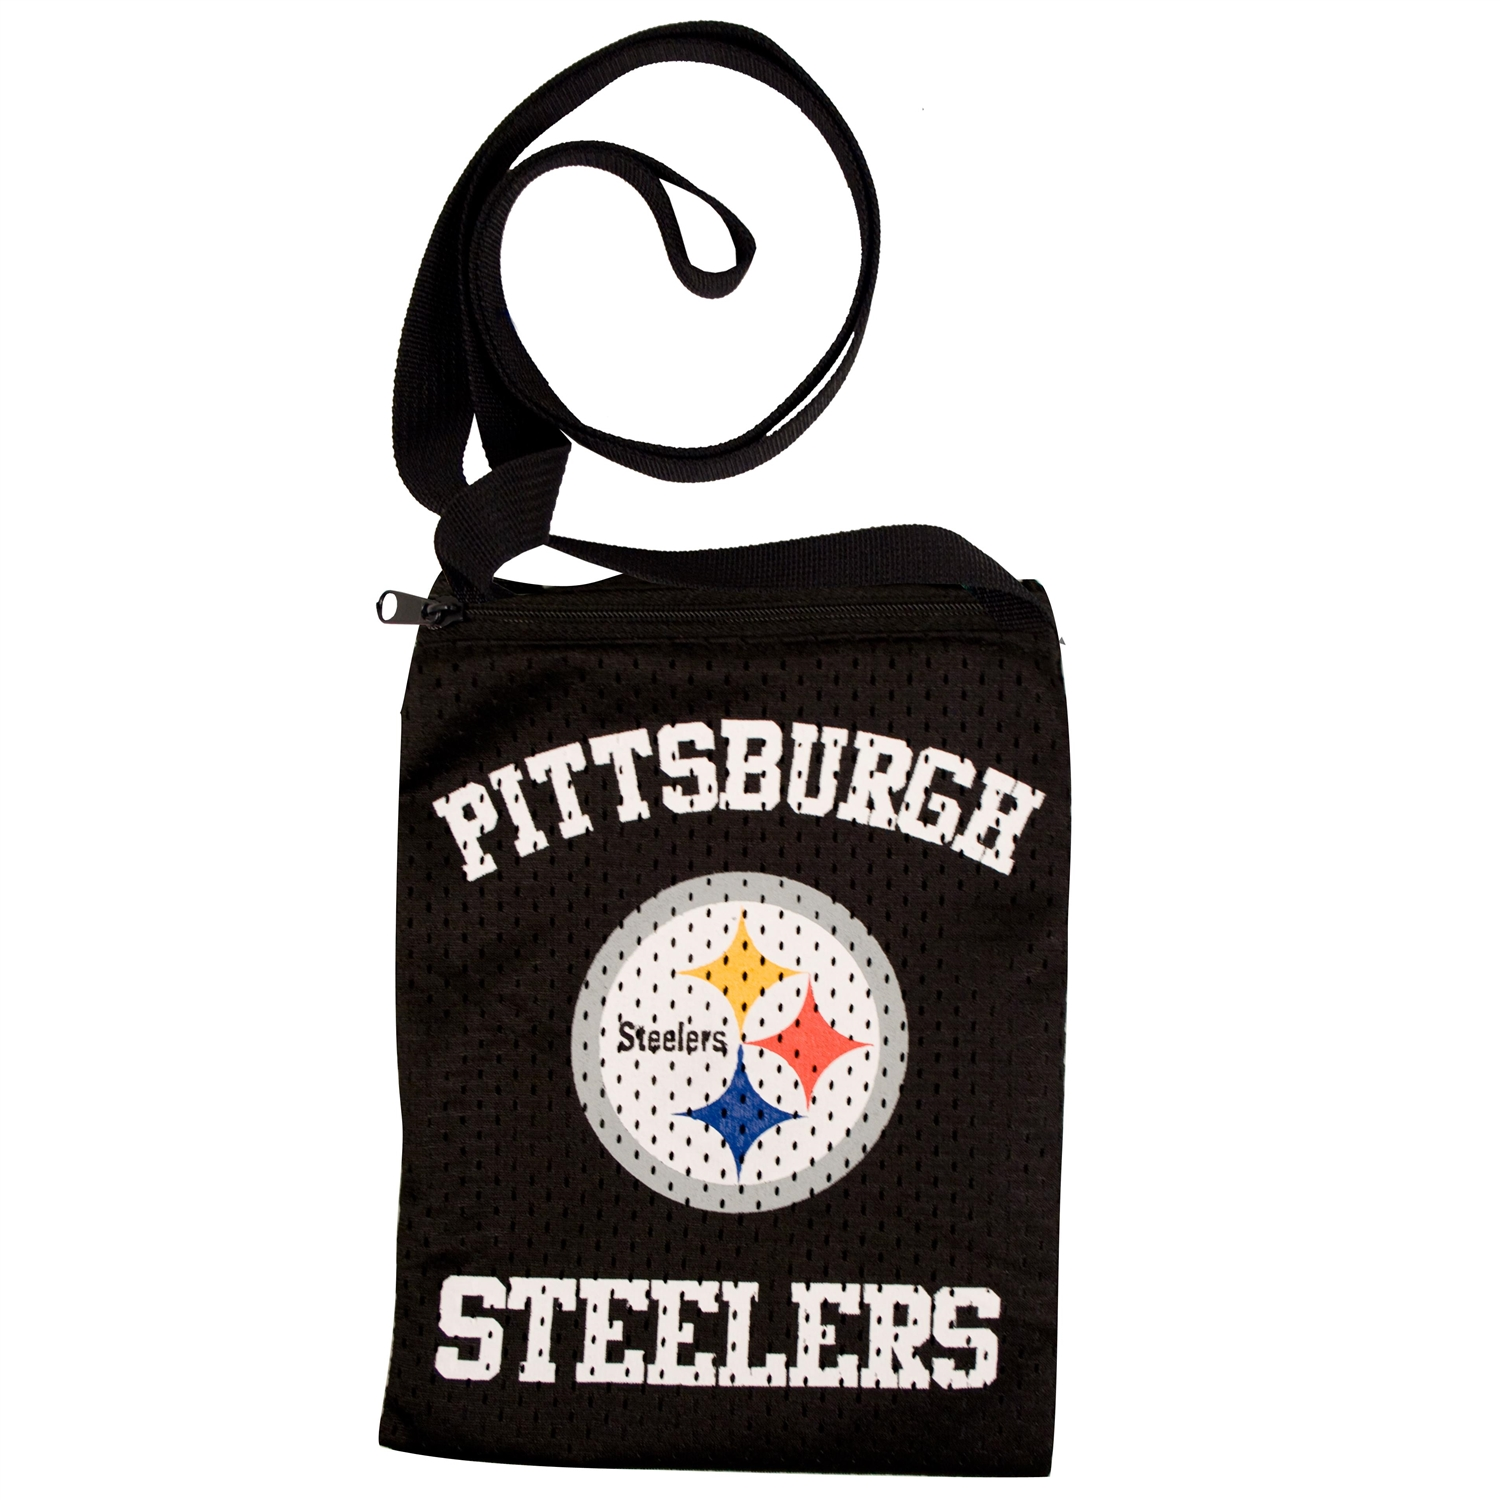 Pittsburgh Steelers Game Day Pouch - 300103-stlr - Nfl Football Pittsburgh Steelers Toys Games Puzzles Games 300103-STLR